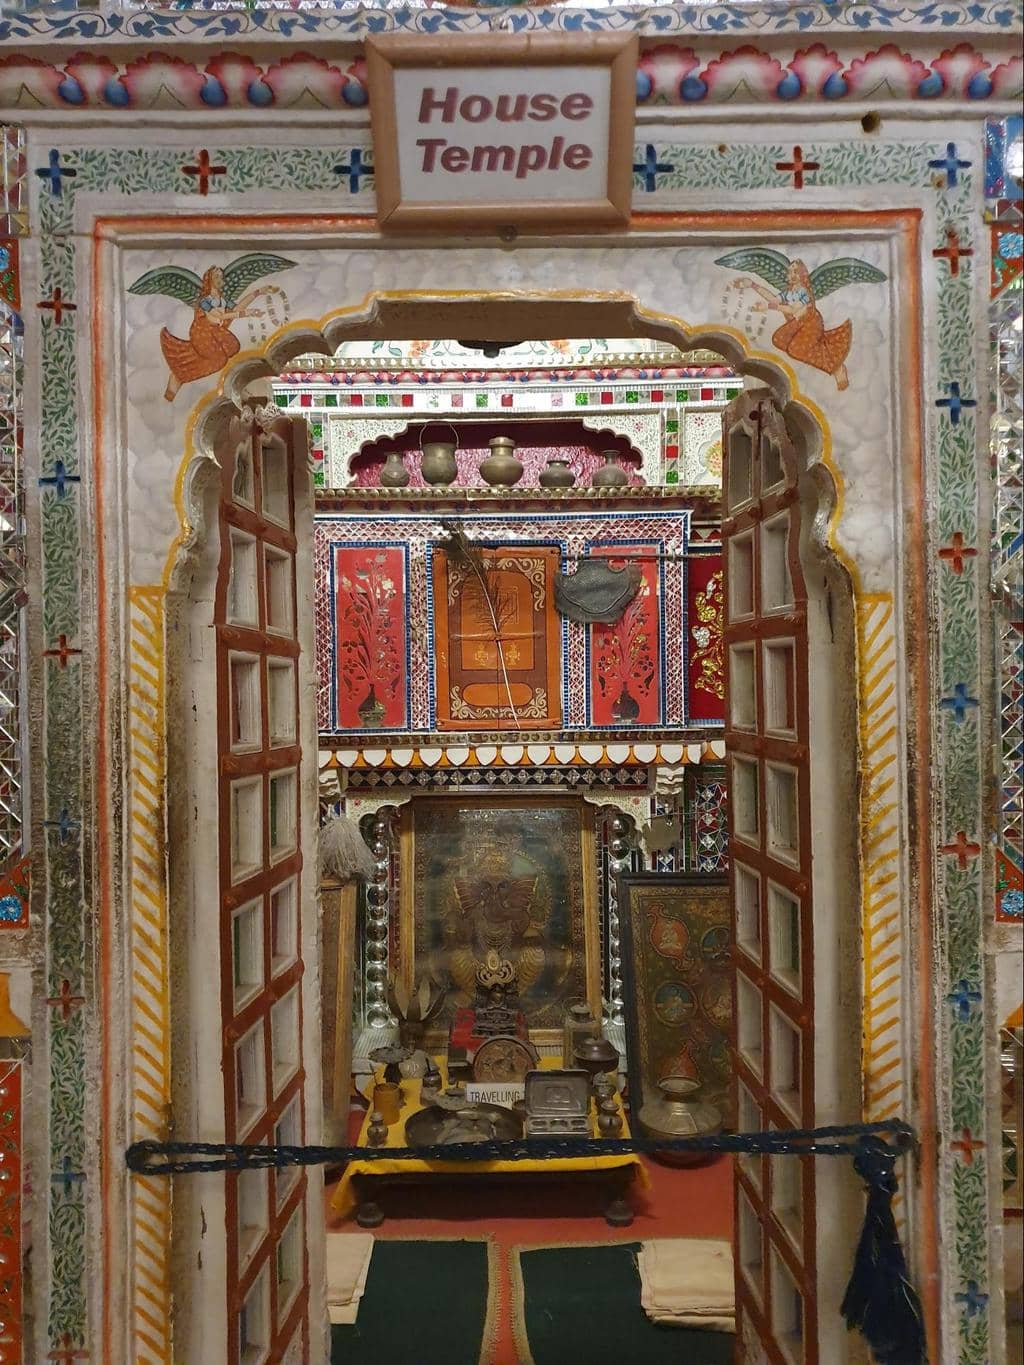 The intricate interiors of Patwon Ki Haveli House Temple